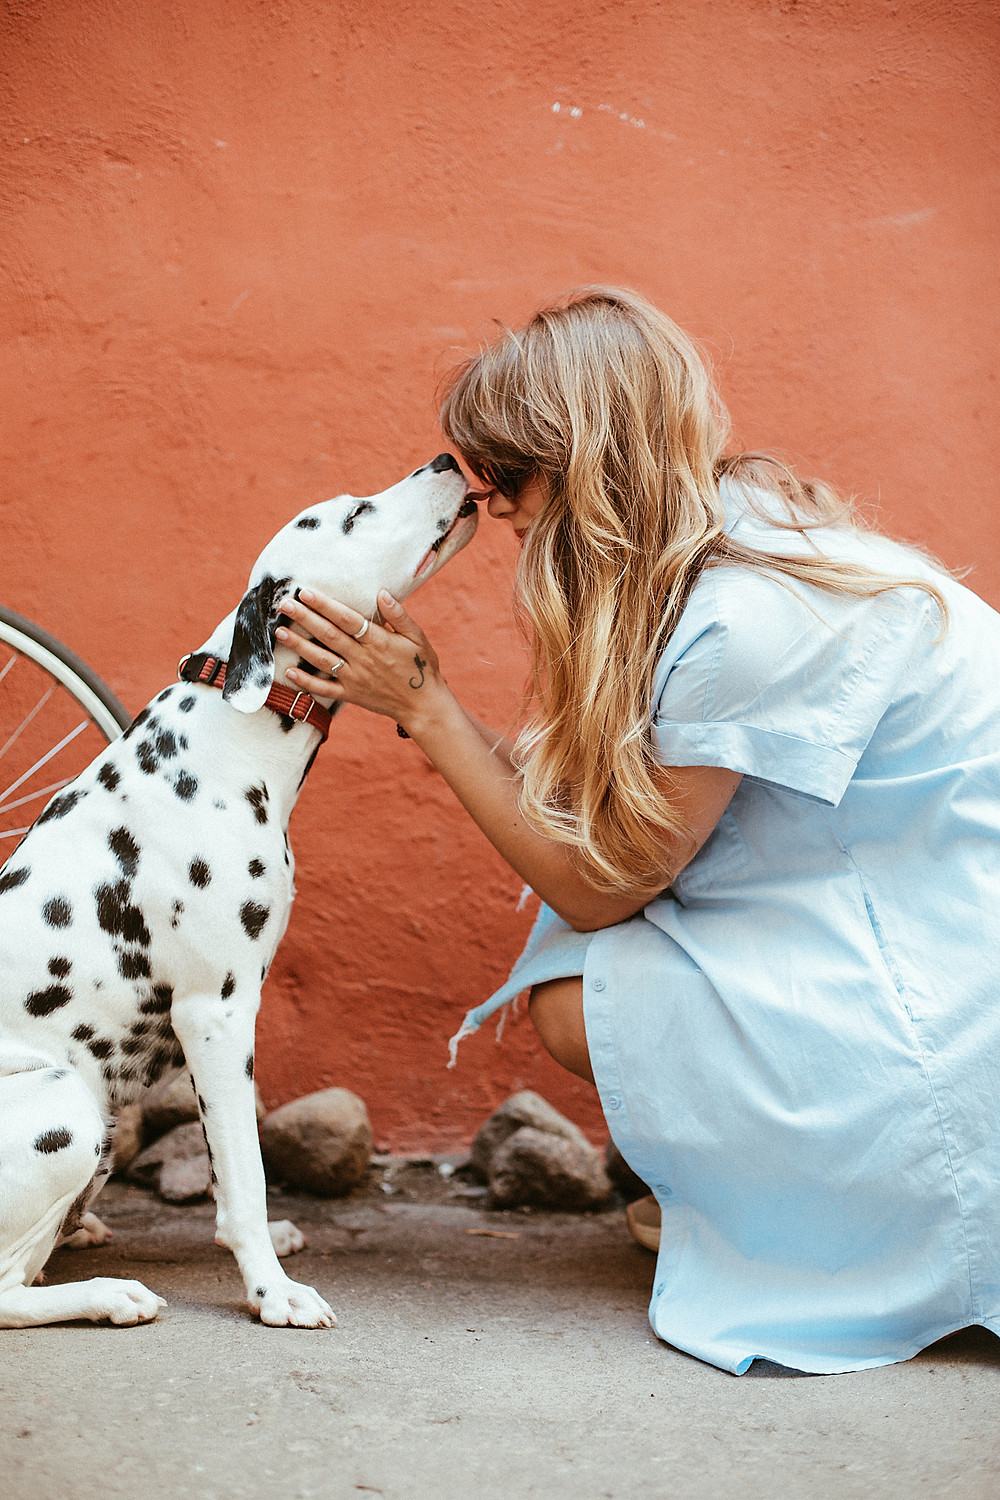 Woman in sunglasses receives kiss from her Dalmatian dog. They are in front of a pink outdoor wall.